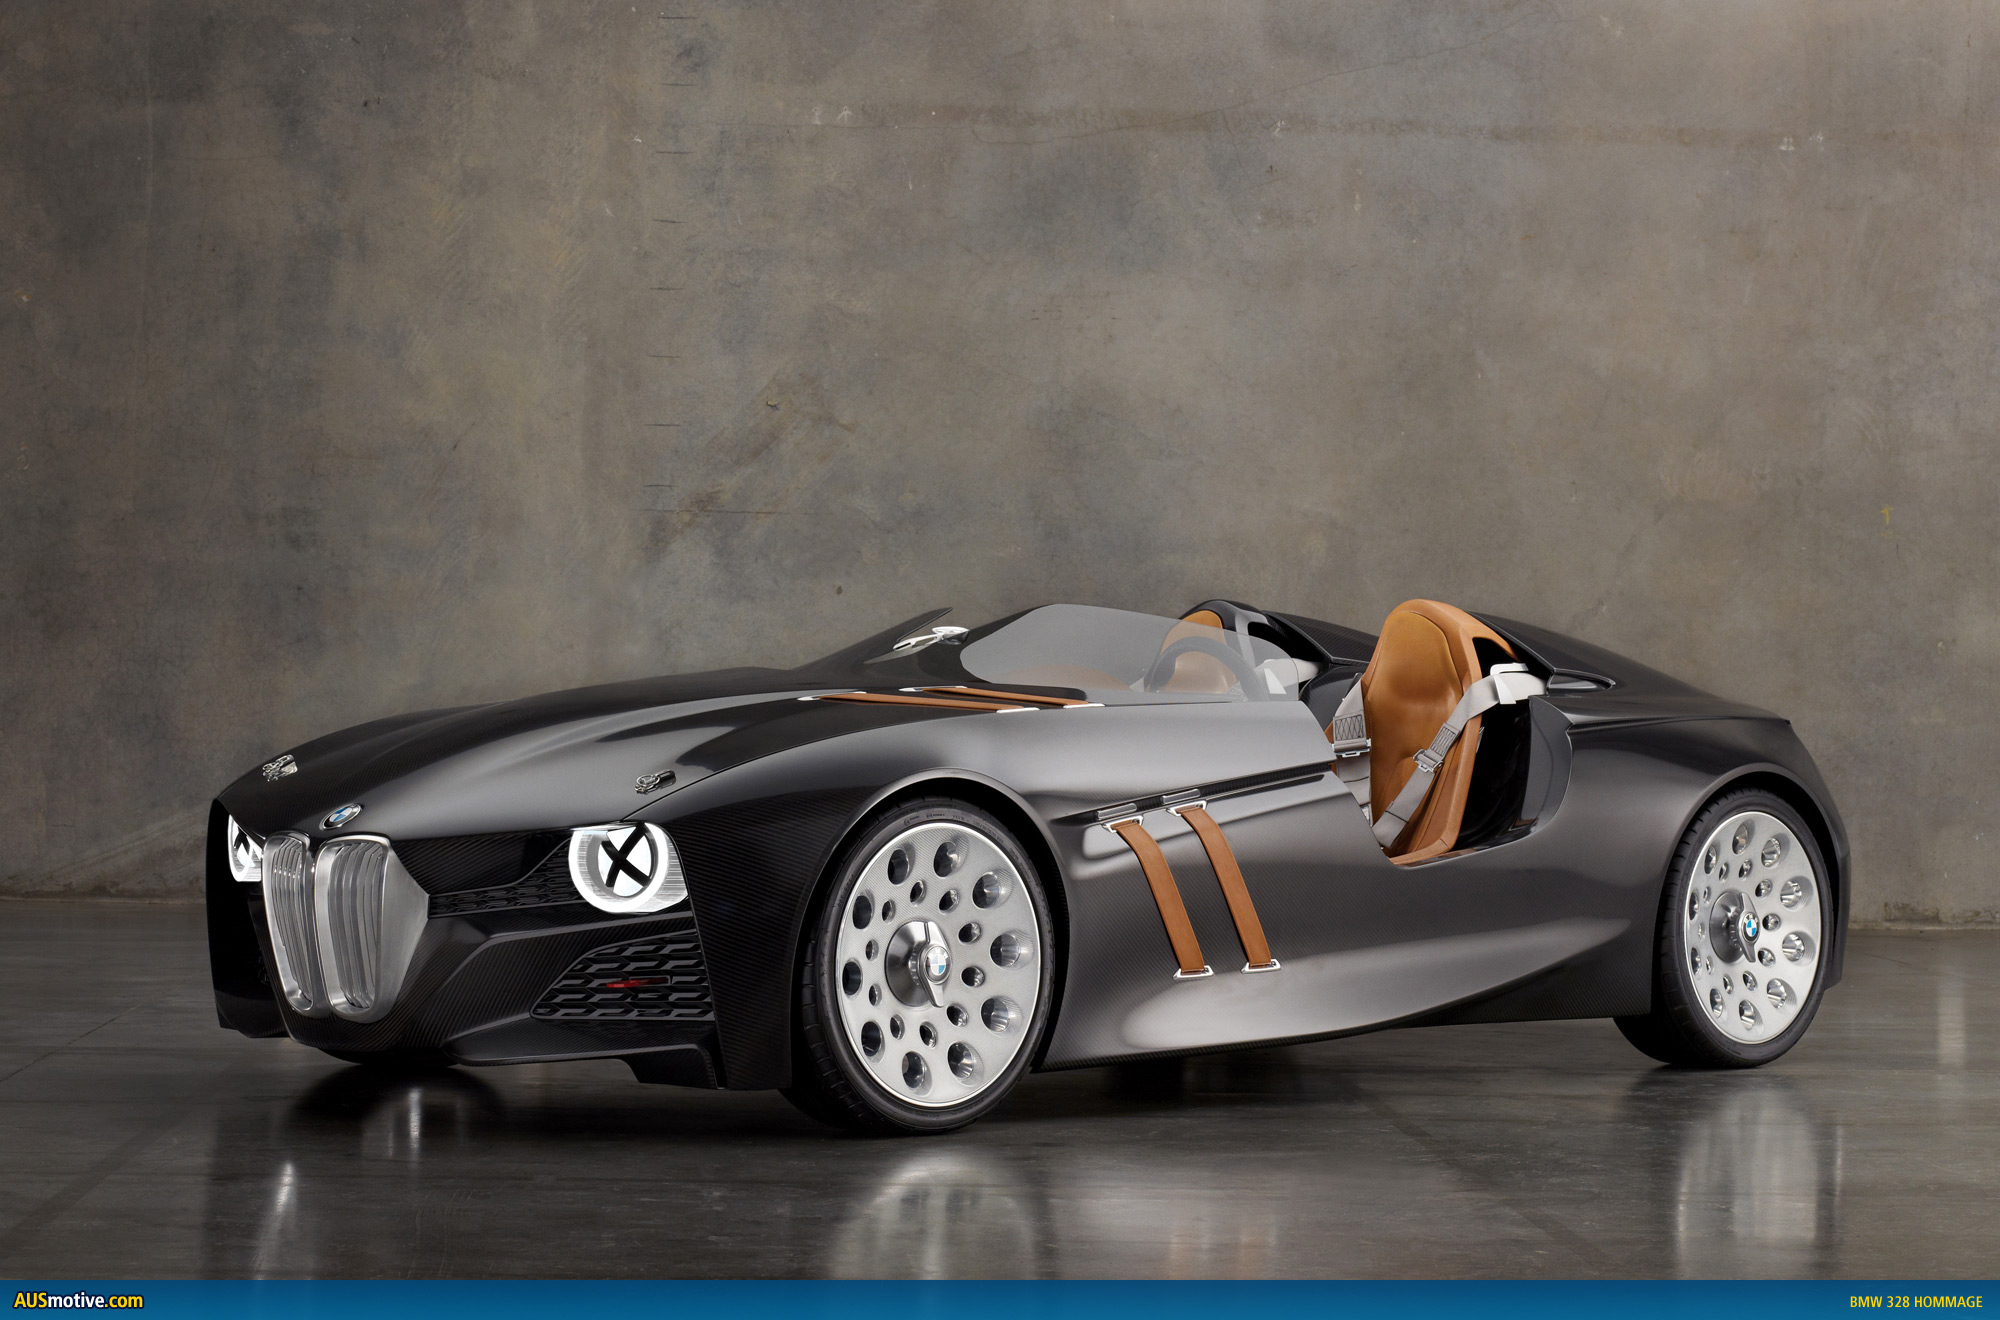 bmw 328 hommage. Black Bedroom Furniture Sets. Home Design Ideas